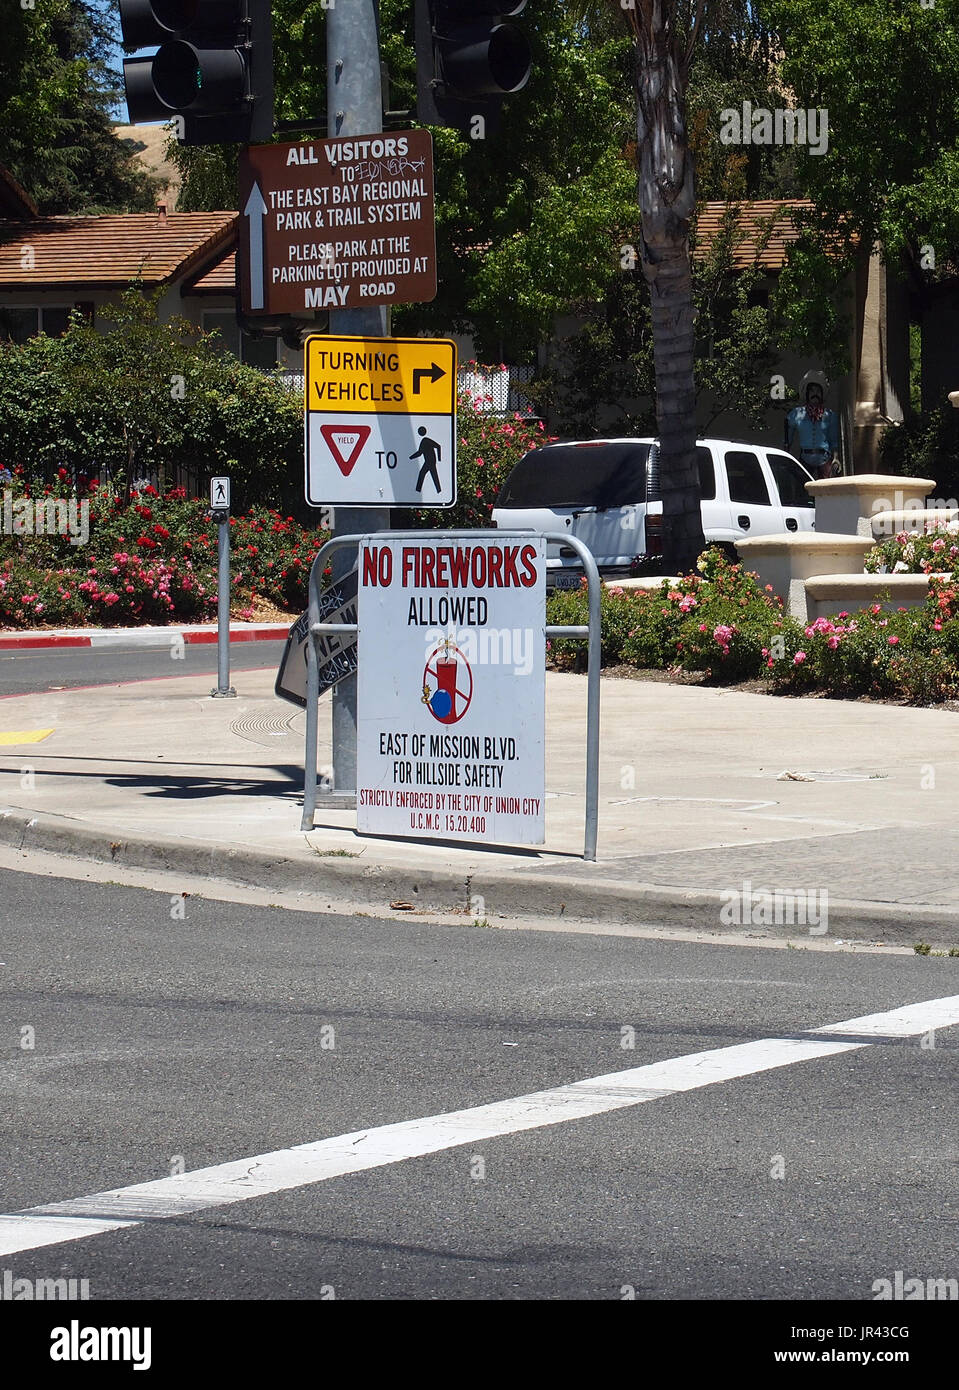 No Fireworks allowed east of Mission Blvd sign, Union City, California - Stock Image